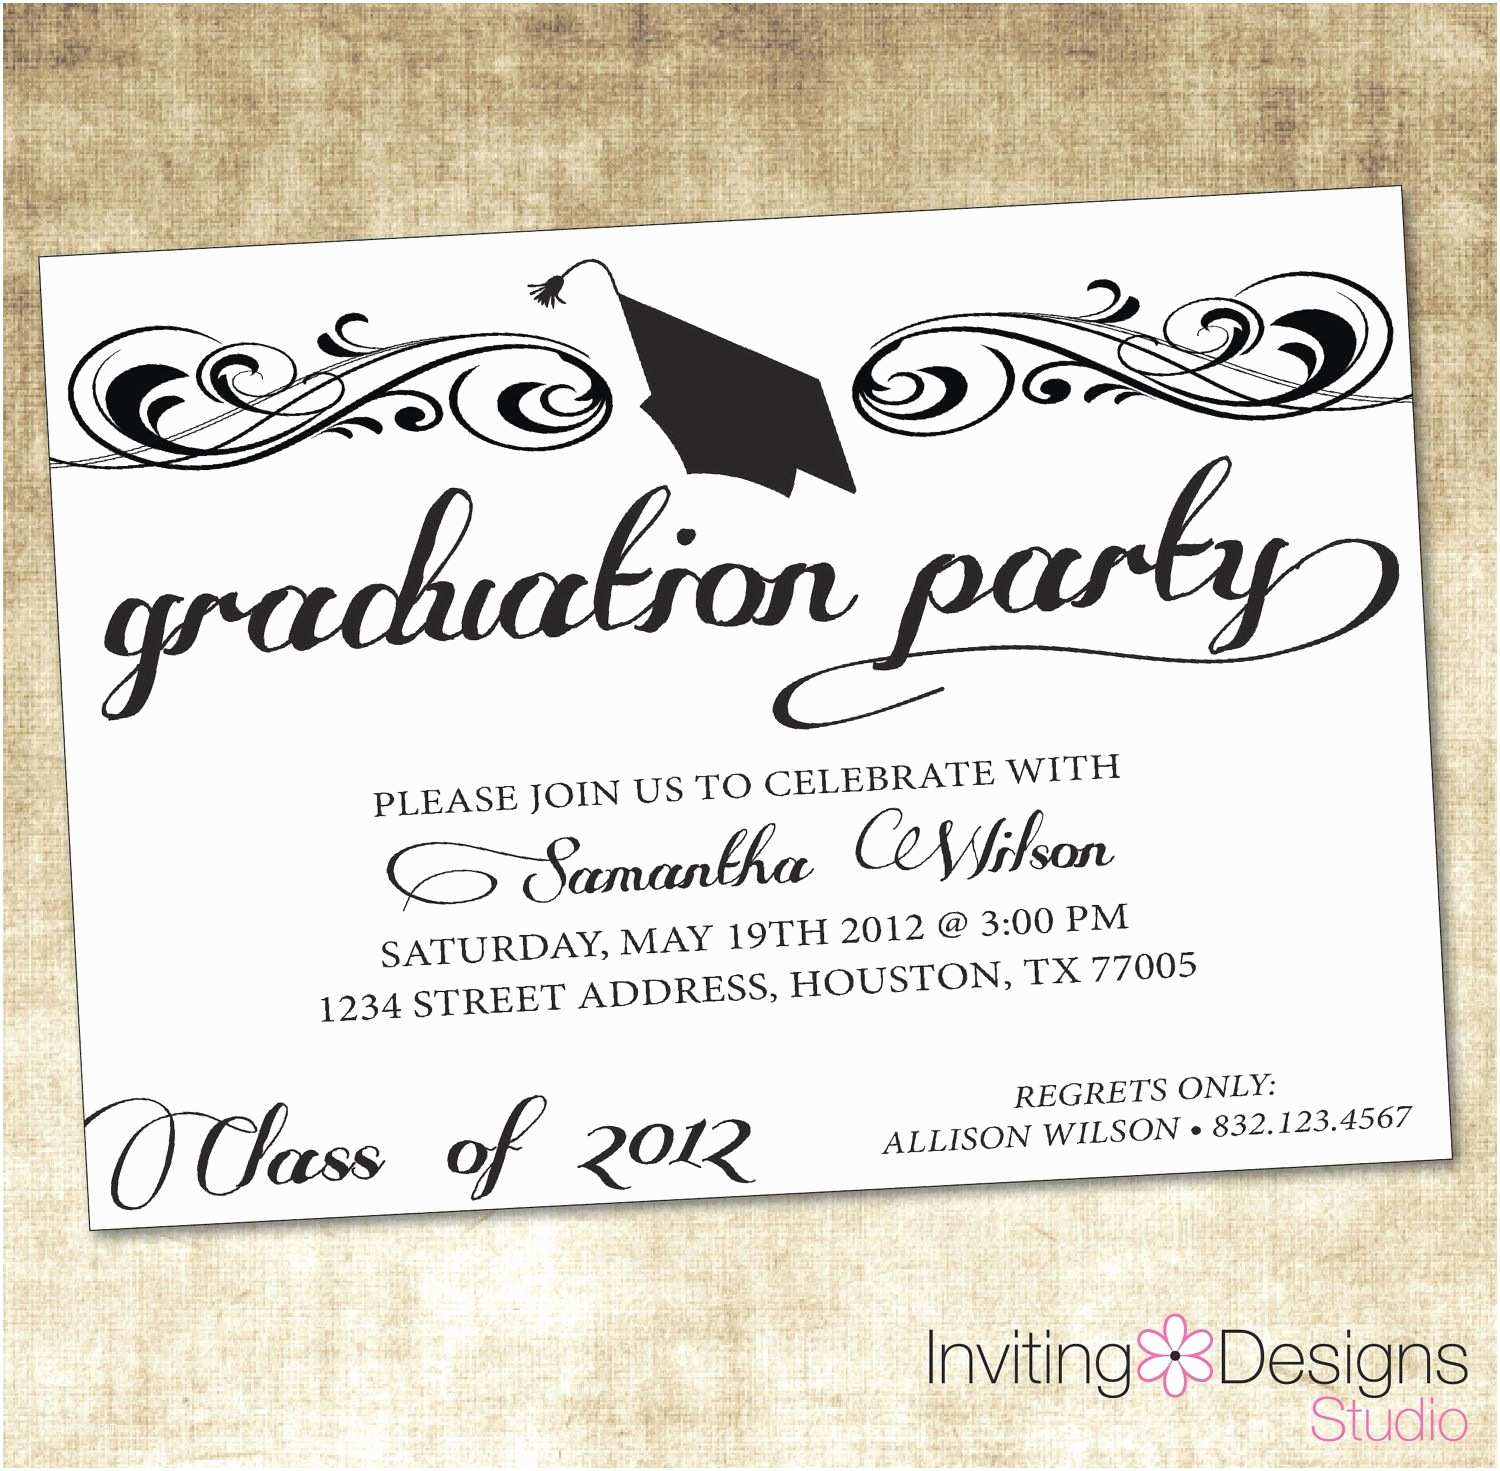 Graduation Party Invitation Wording Image Result for Graduation Party Invitation Wording Ideas